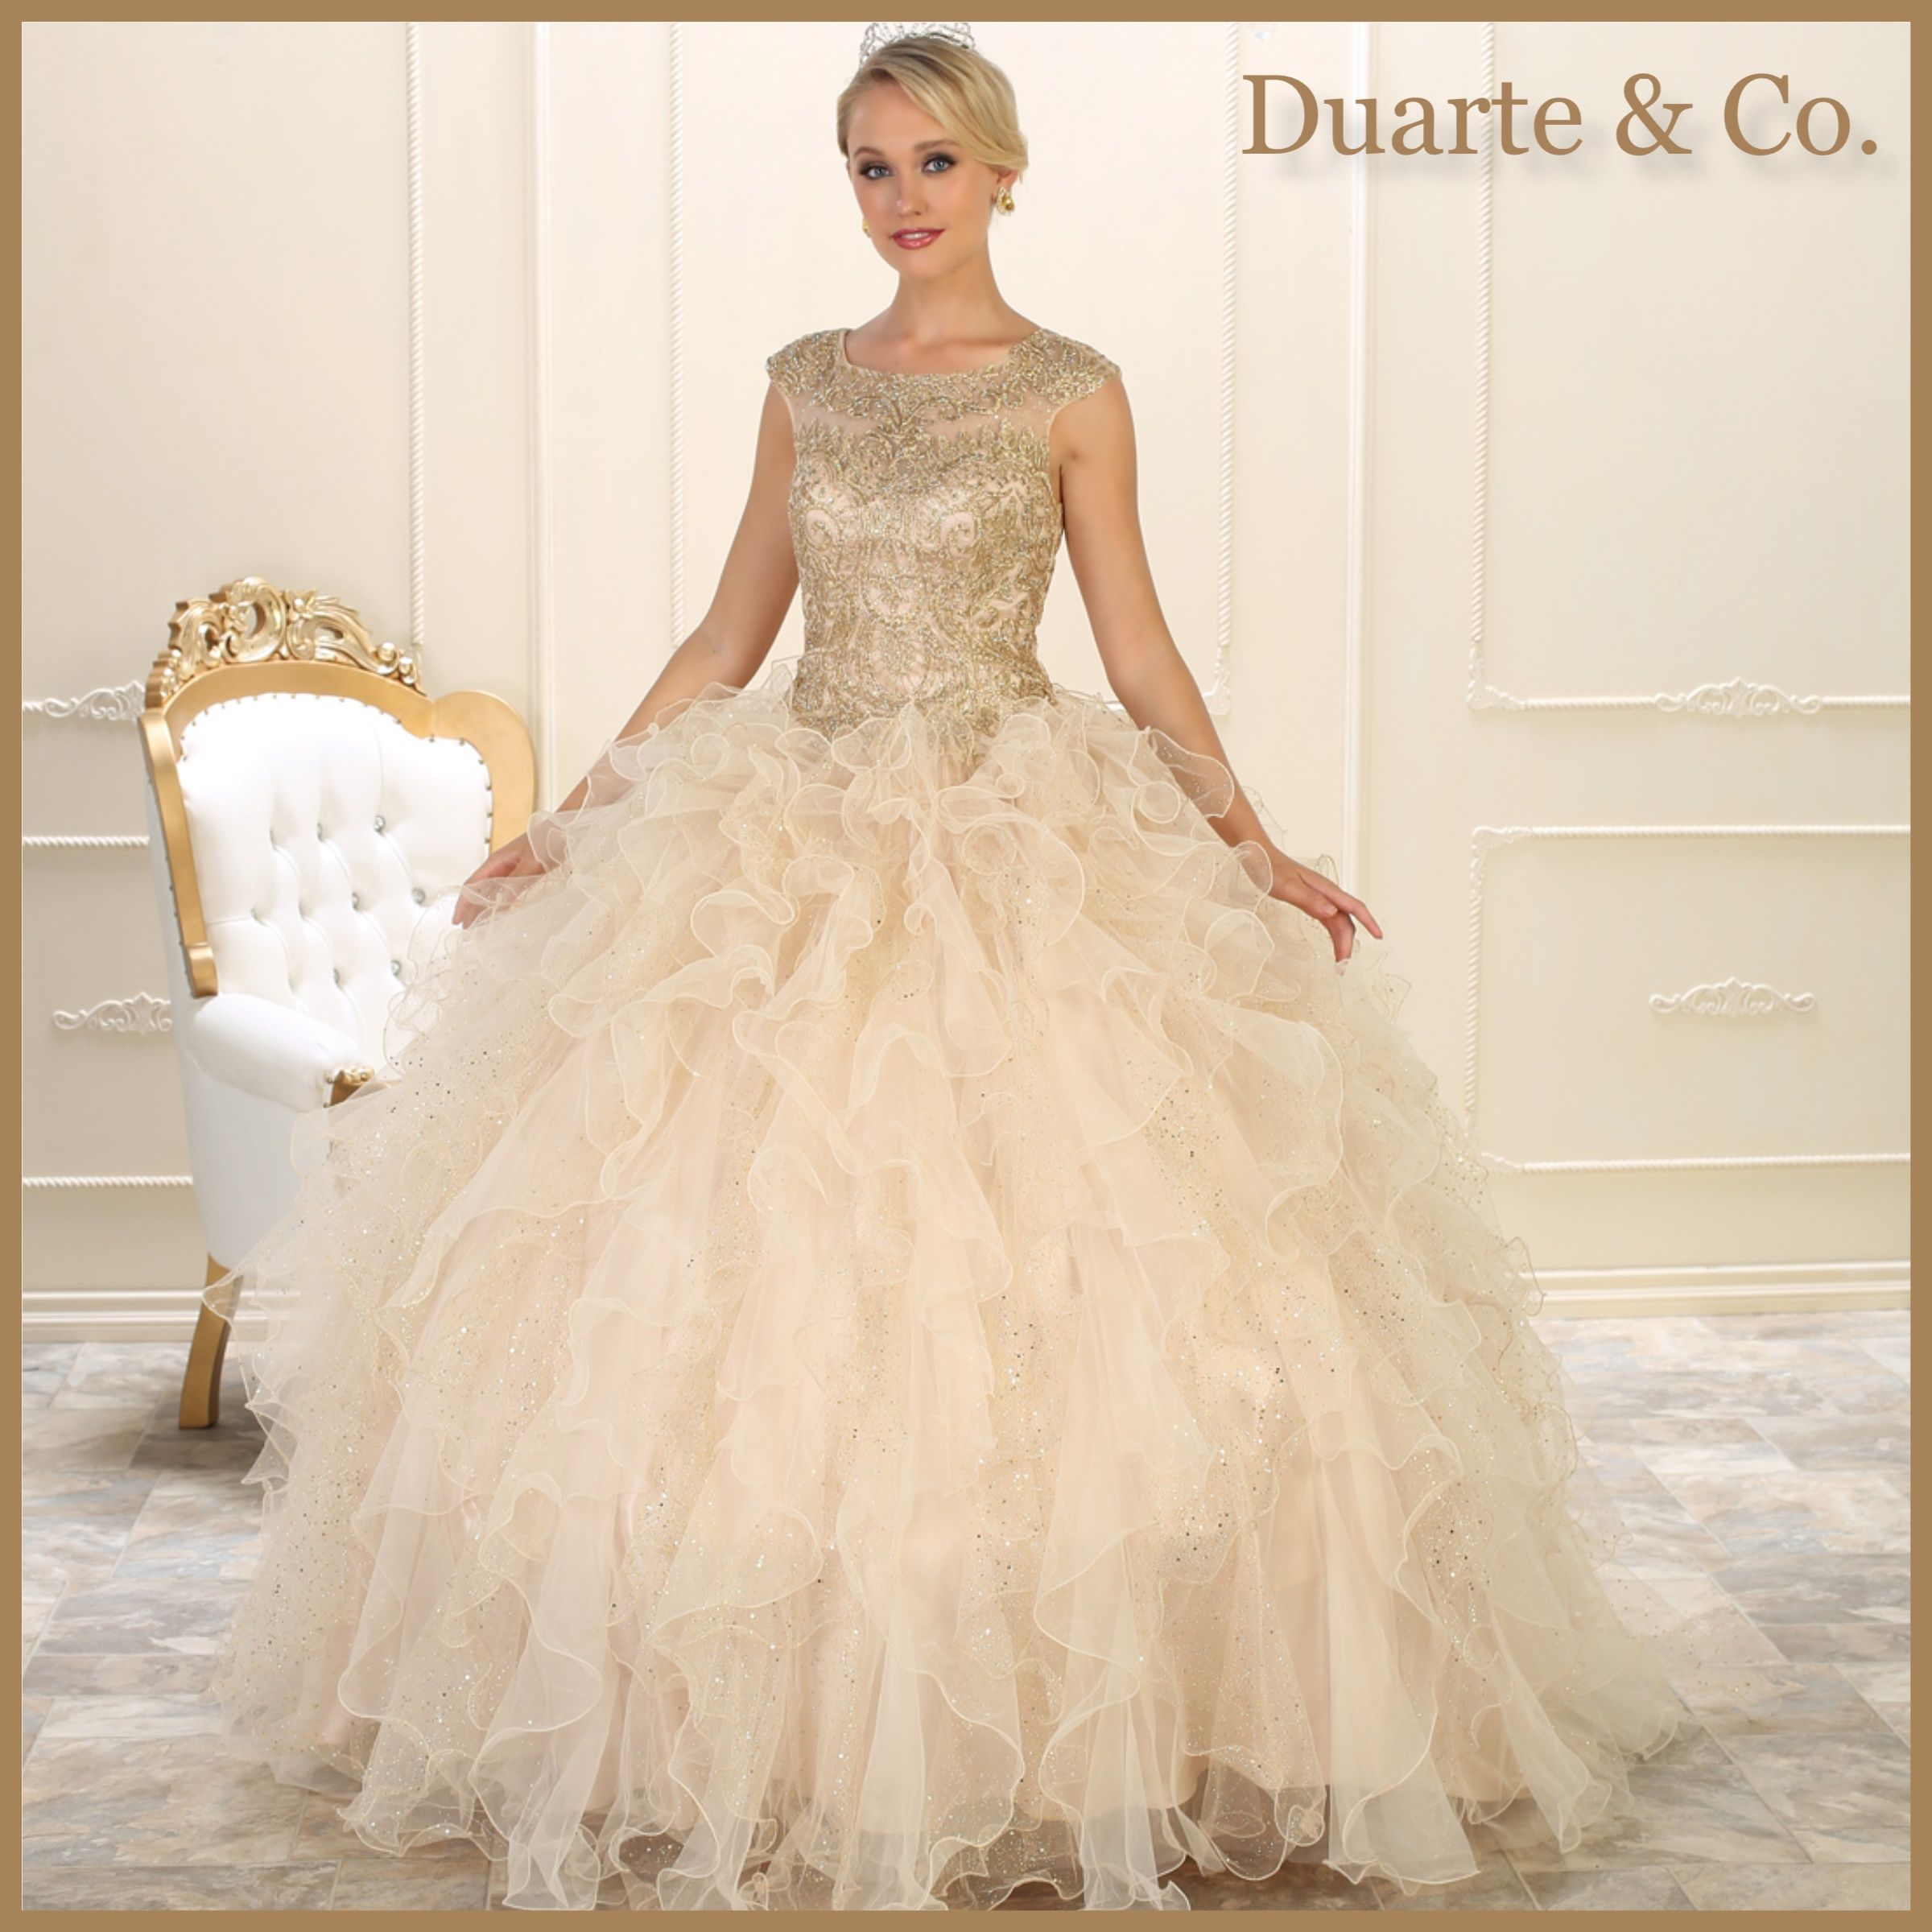 Lace Quinceanera/Sweet 16 Organza Ball Gown - LK104 | Sweet 16, Ball ...